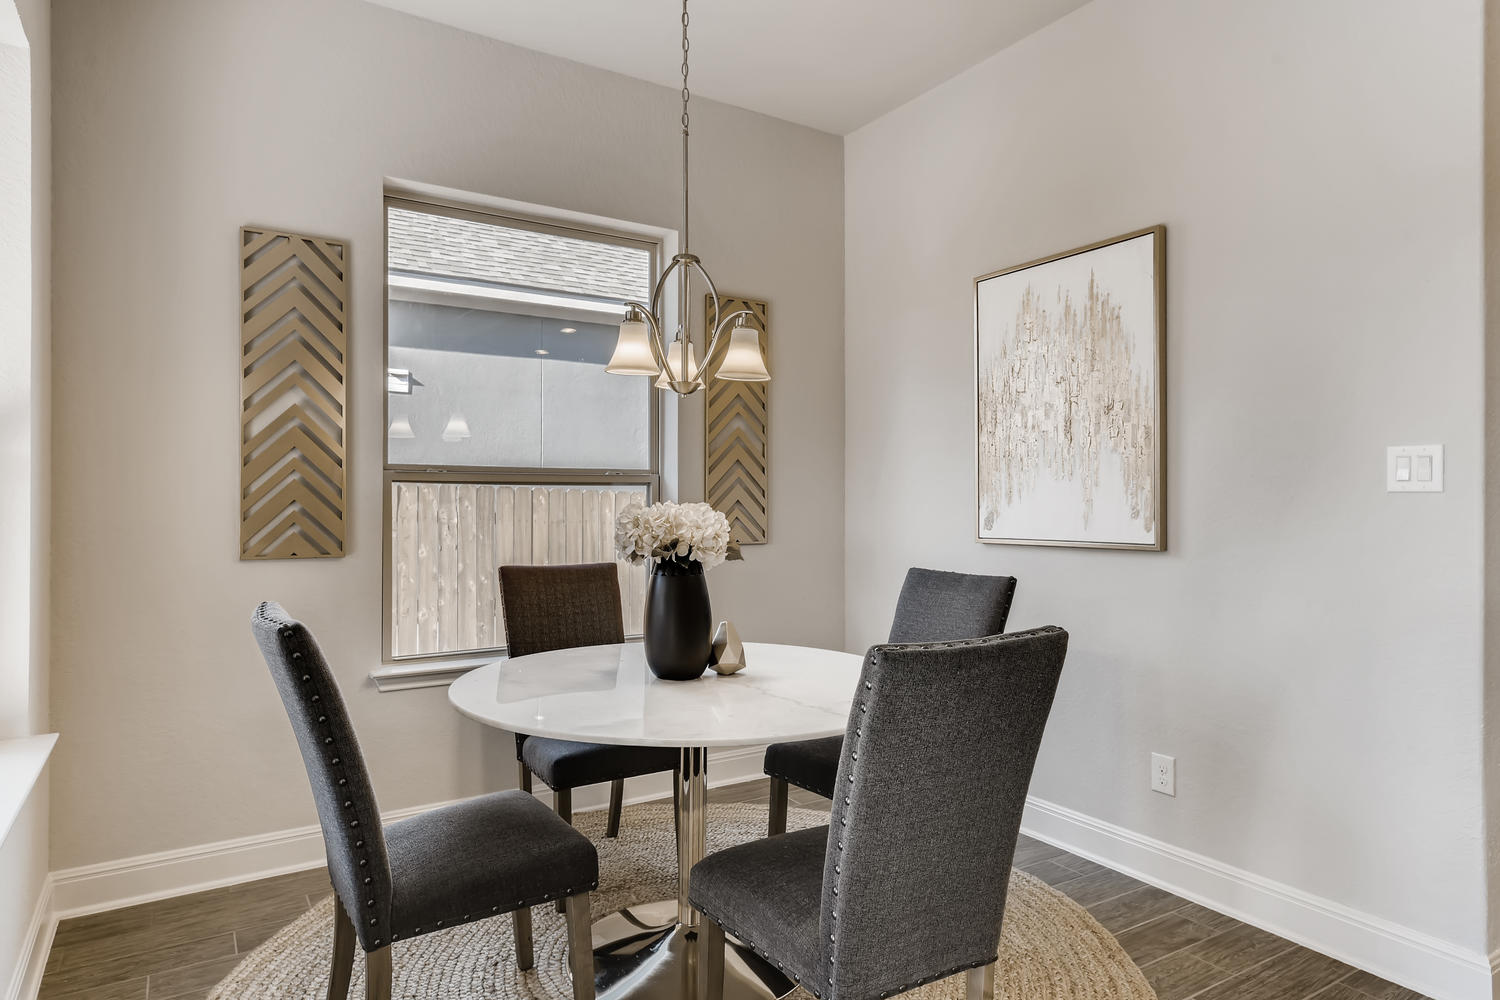 Full home staging in Las Vegas, Nevada, featuring a staged dining room